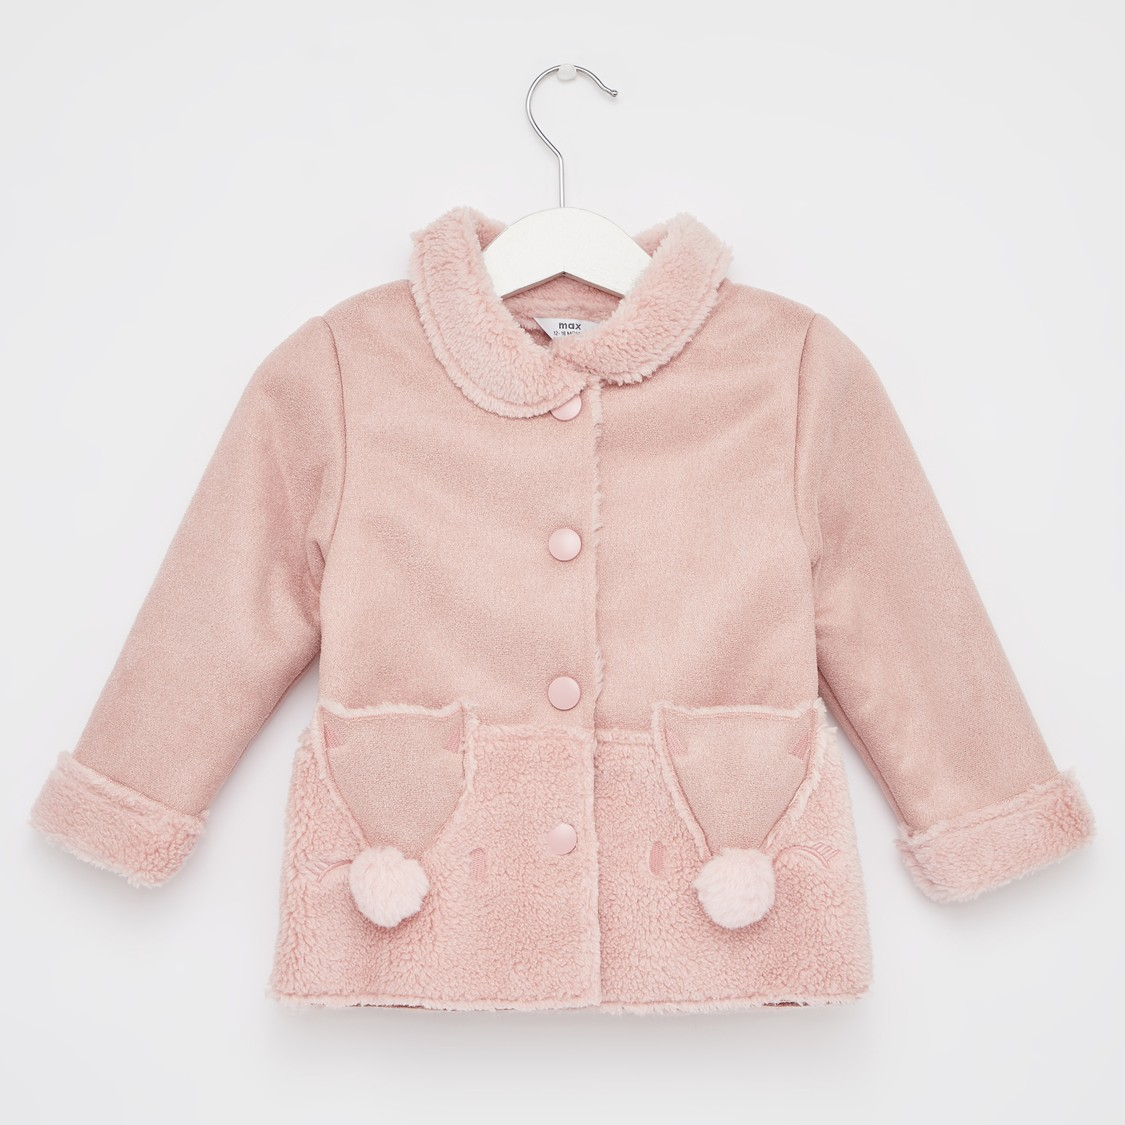 Adventure Animal Fur Lined Jacket with Pockets and Long Sleeves